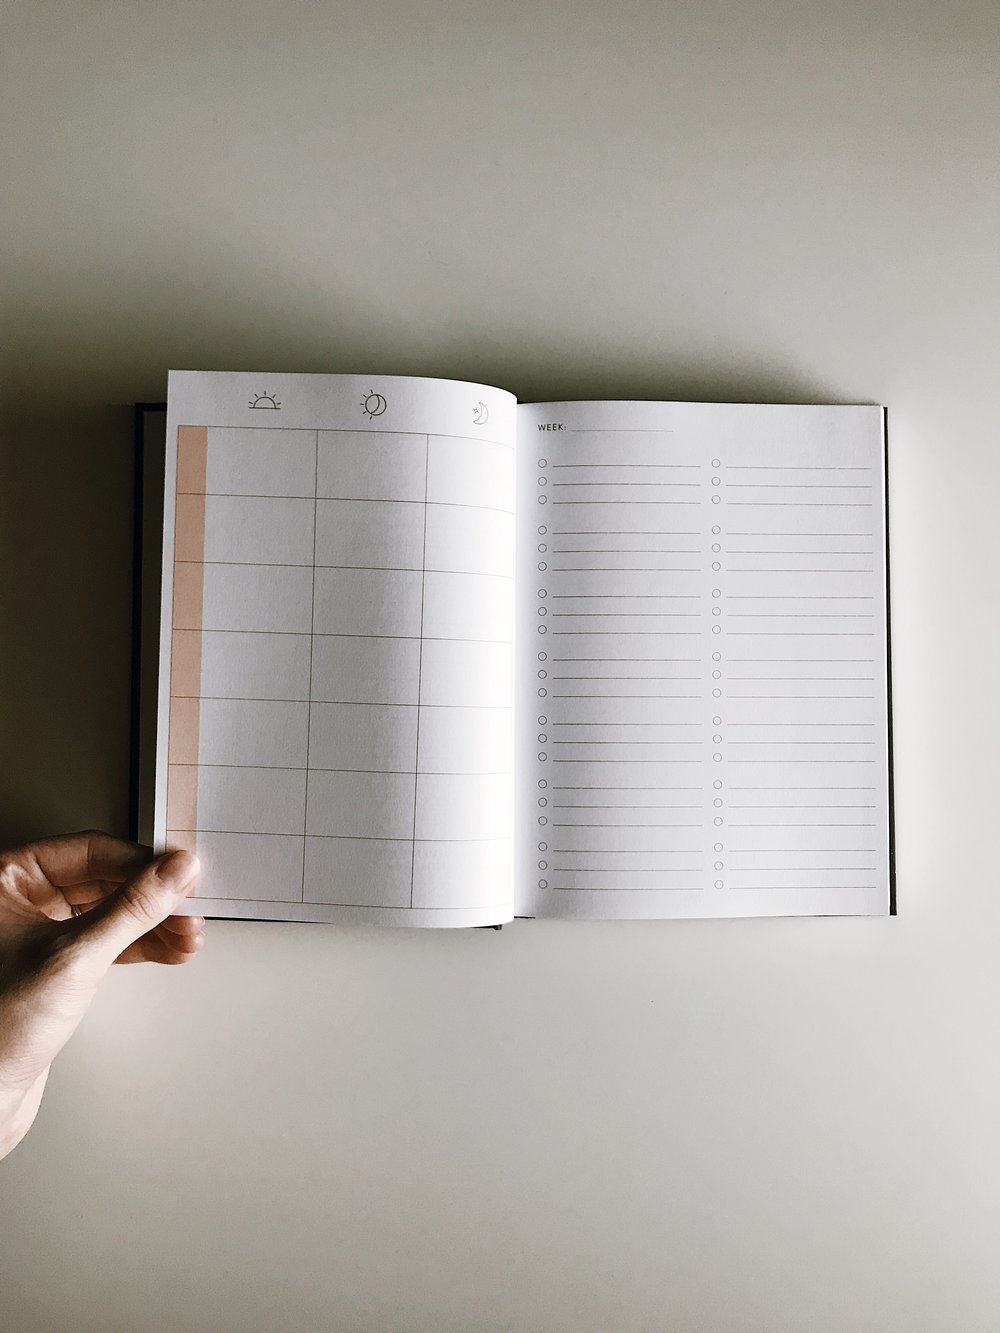 ORGANIZING YOUR LIFE WITH METHOD TO THE MADNESS PLANNER - This Wild Home